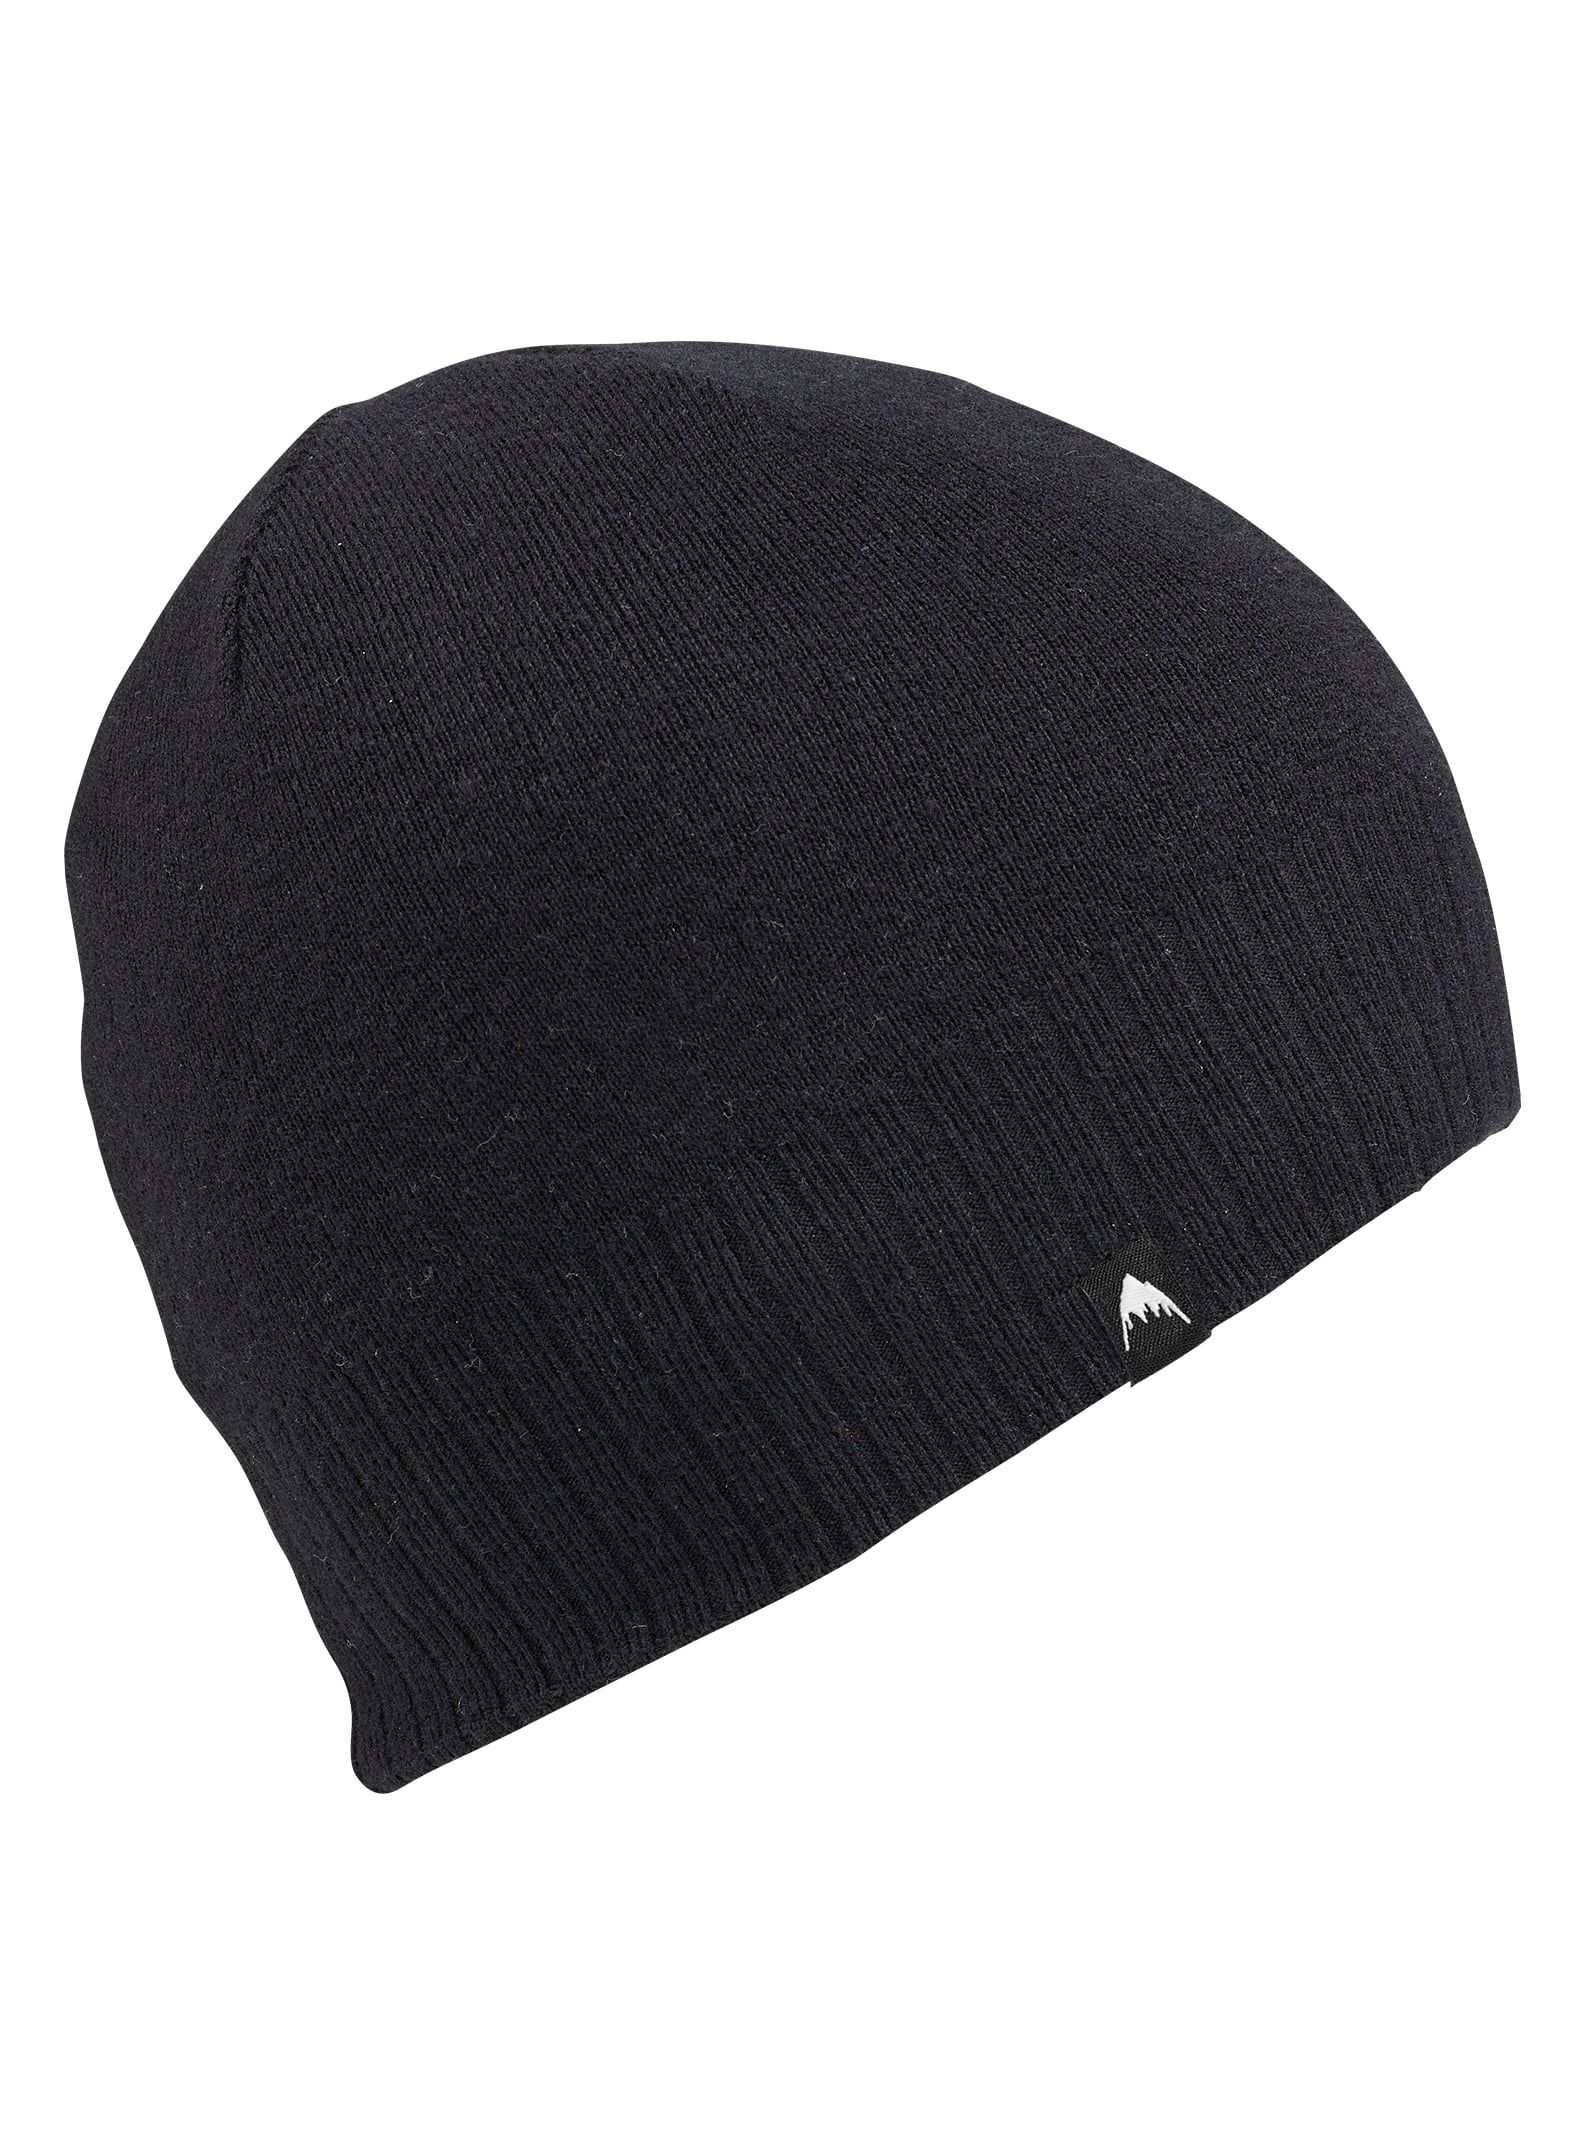 Burton Wool Liner Beanie - Reversible Winter Hats For Men 4a89f6e7a16